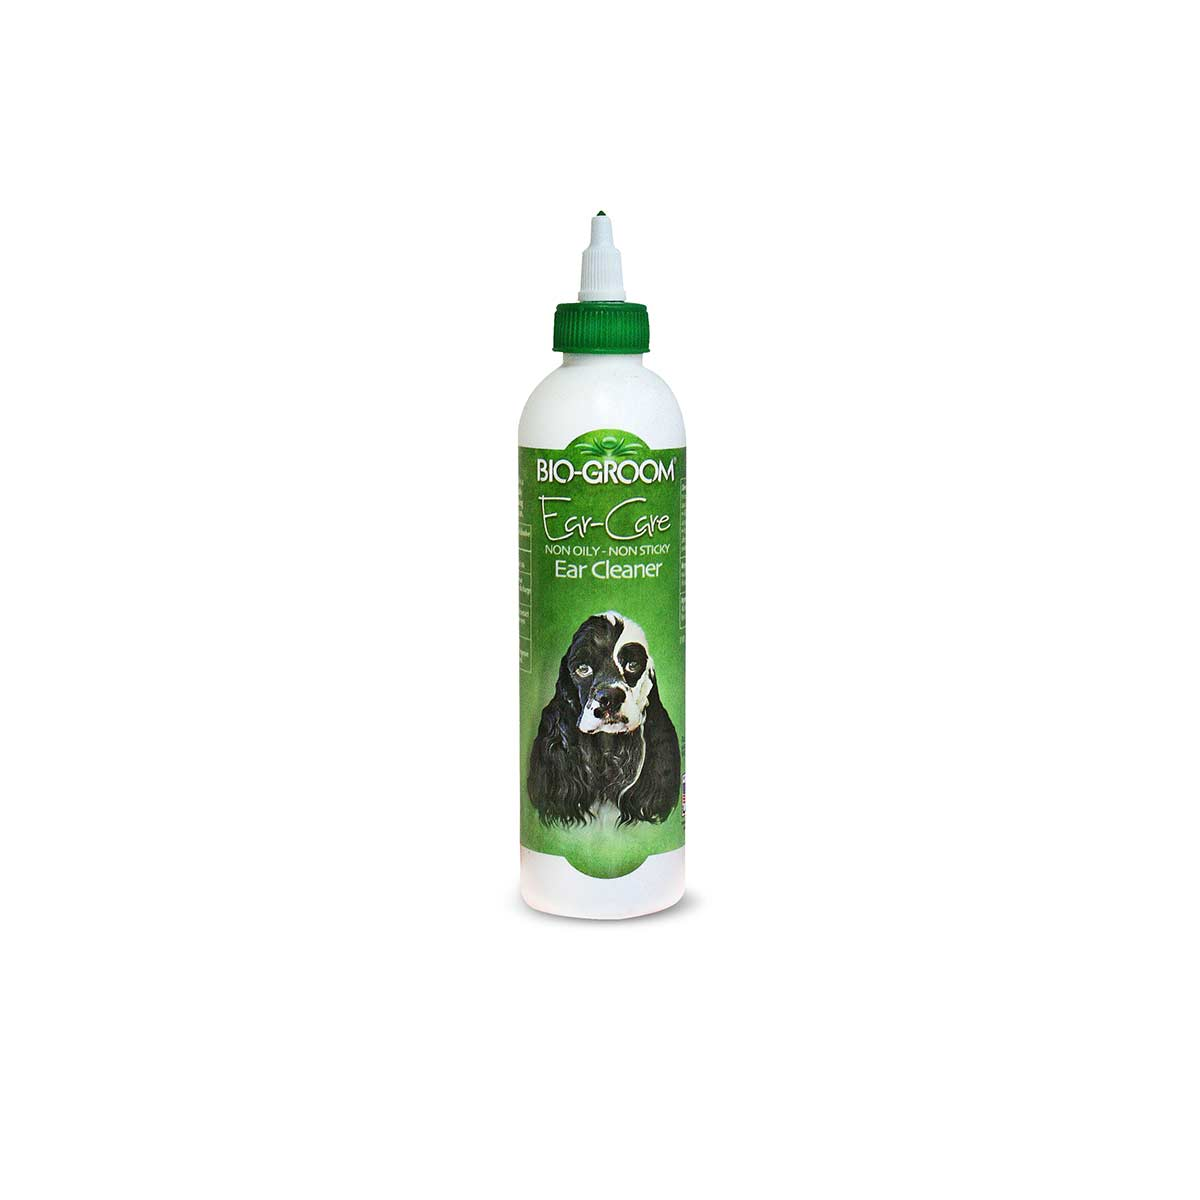 Bio-Groom Ear Care Non-oily Non-Sticky Ear Cleaner and Ear Wax Remover for Dogs 8 oz